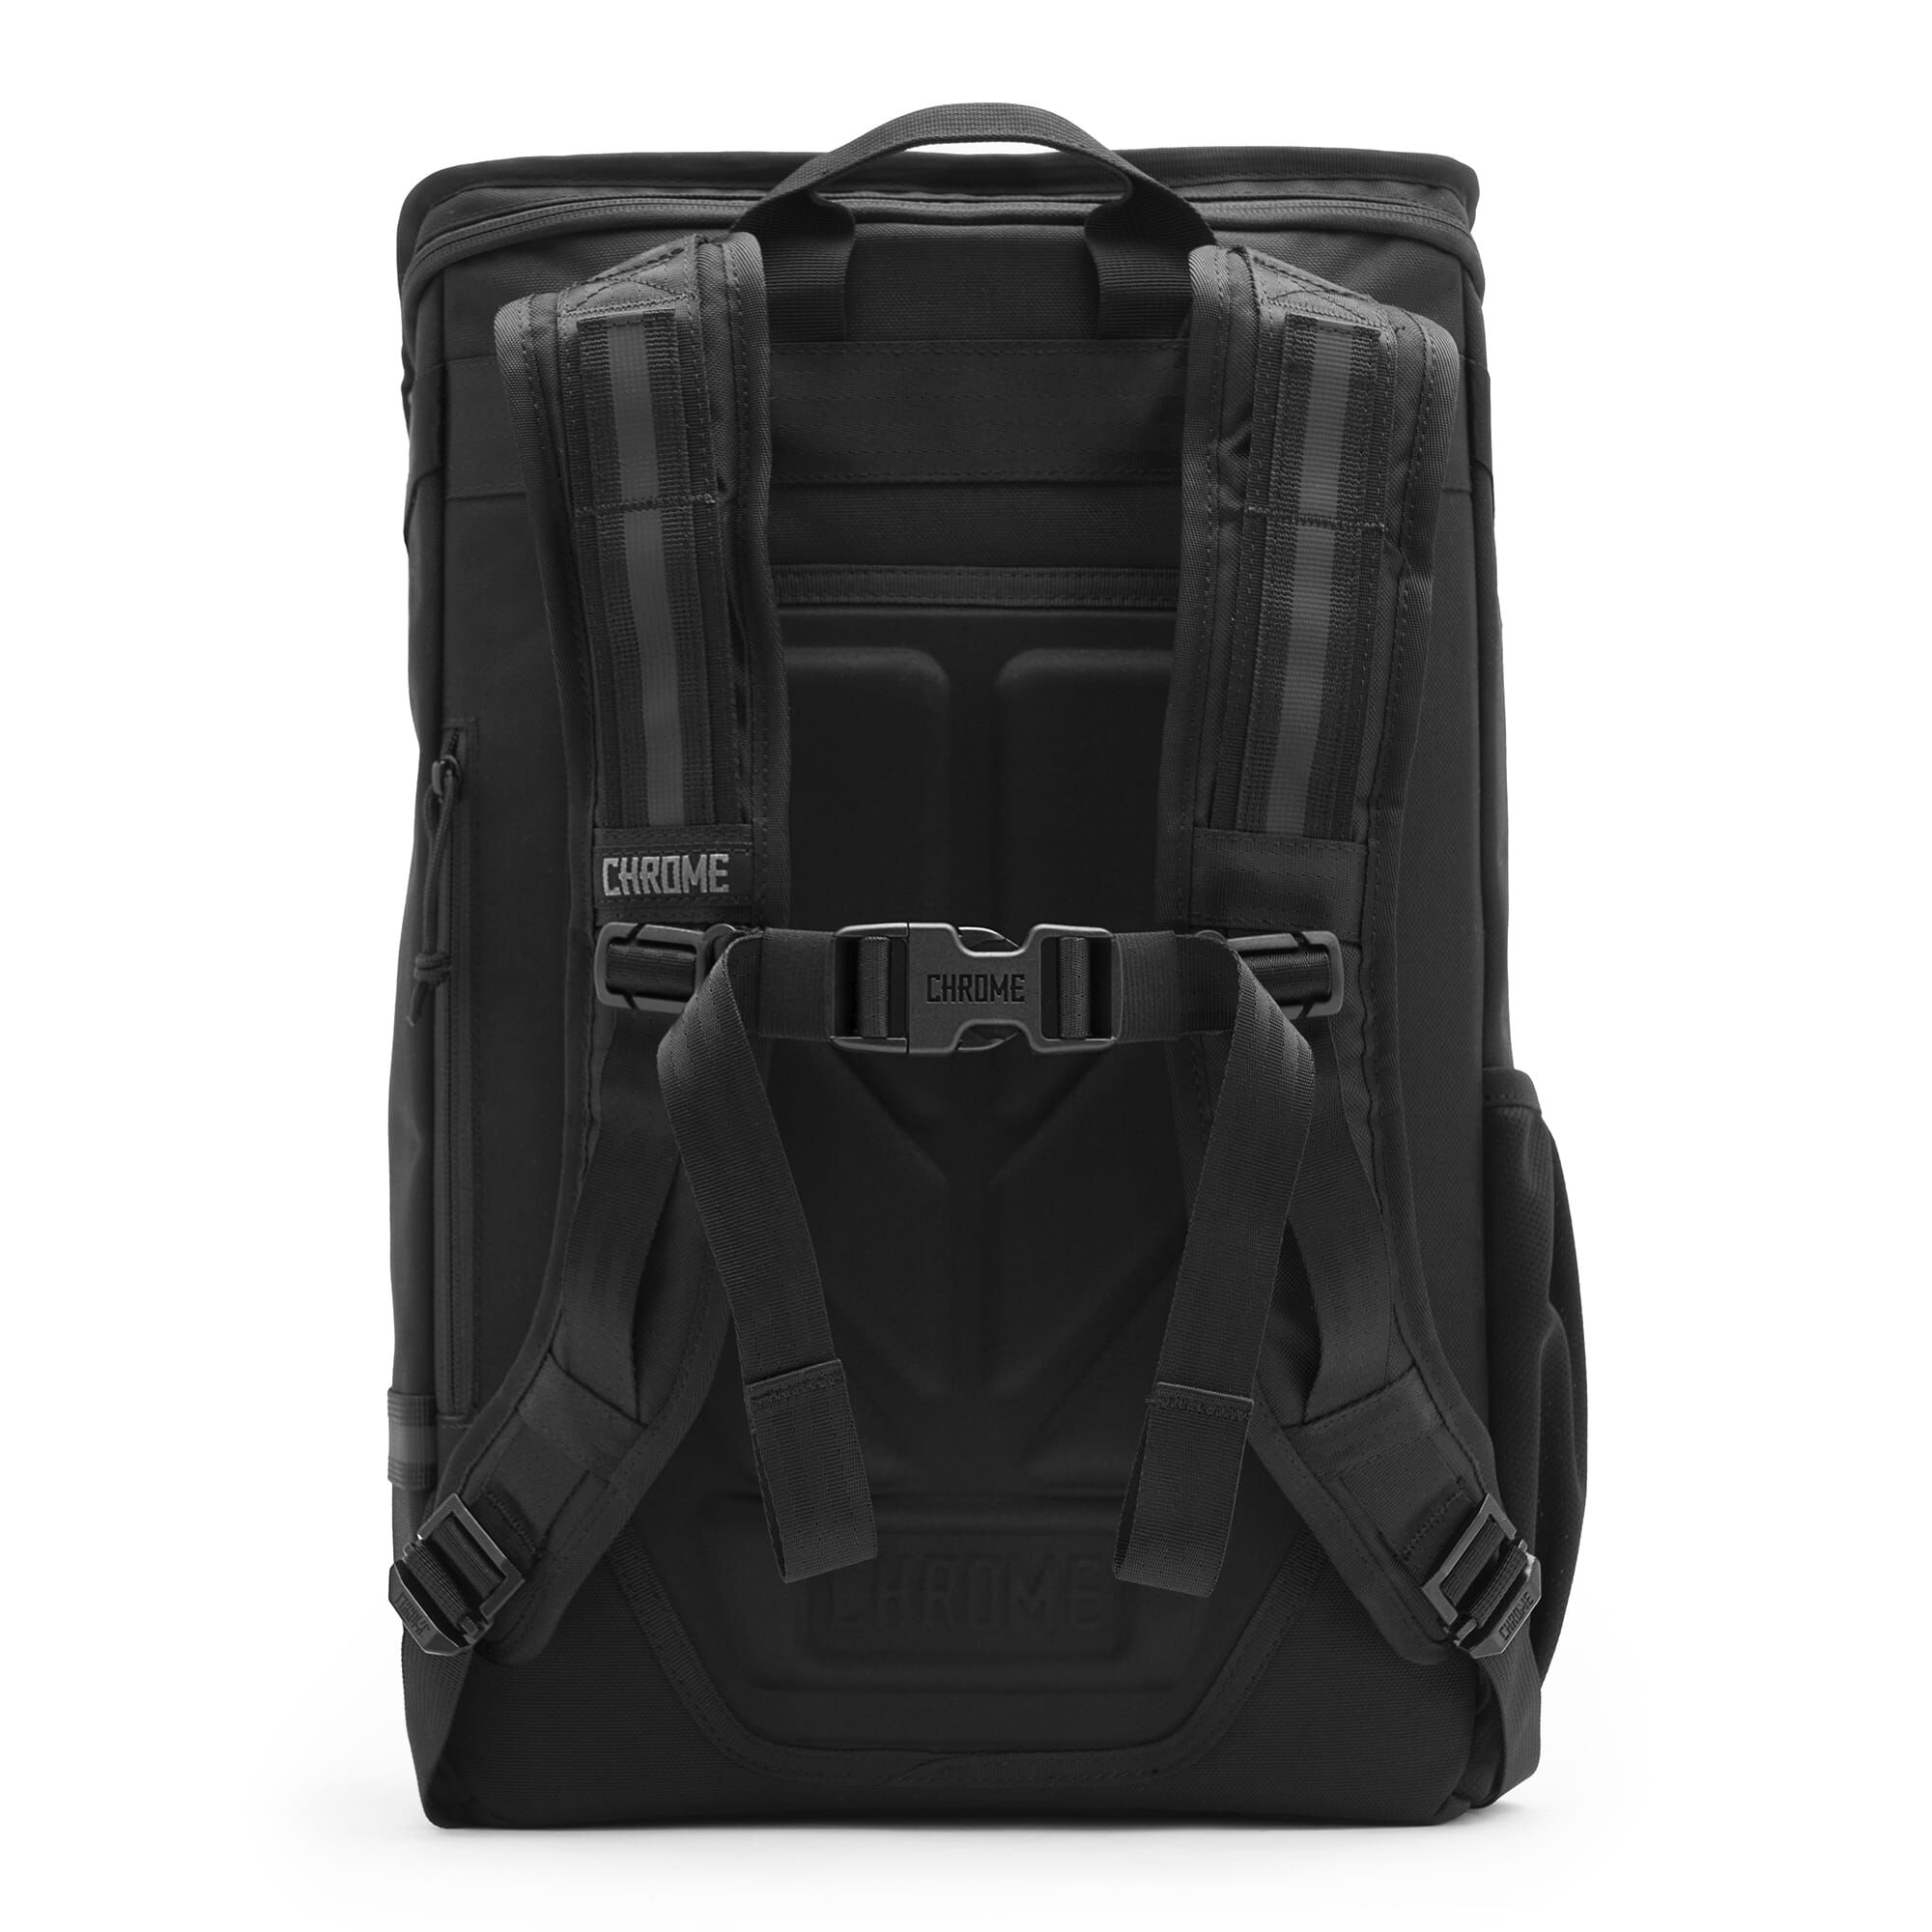 355e4c80dafc4 Echo Bravo Backpack - Fits laptops up to 15